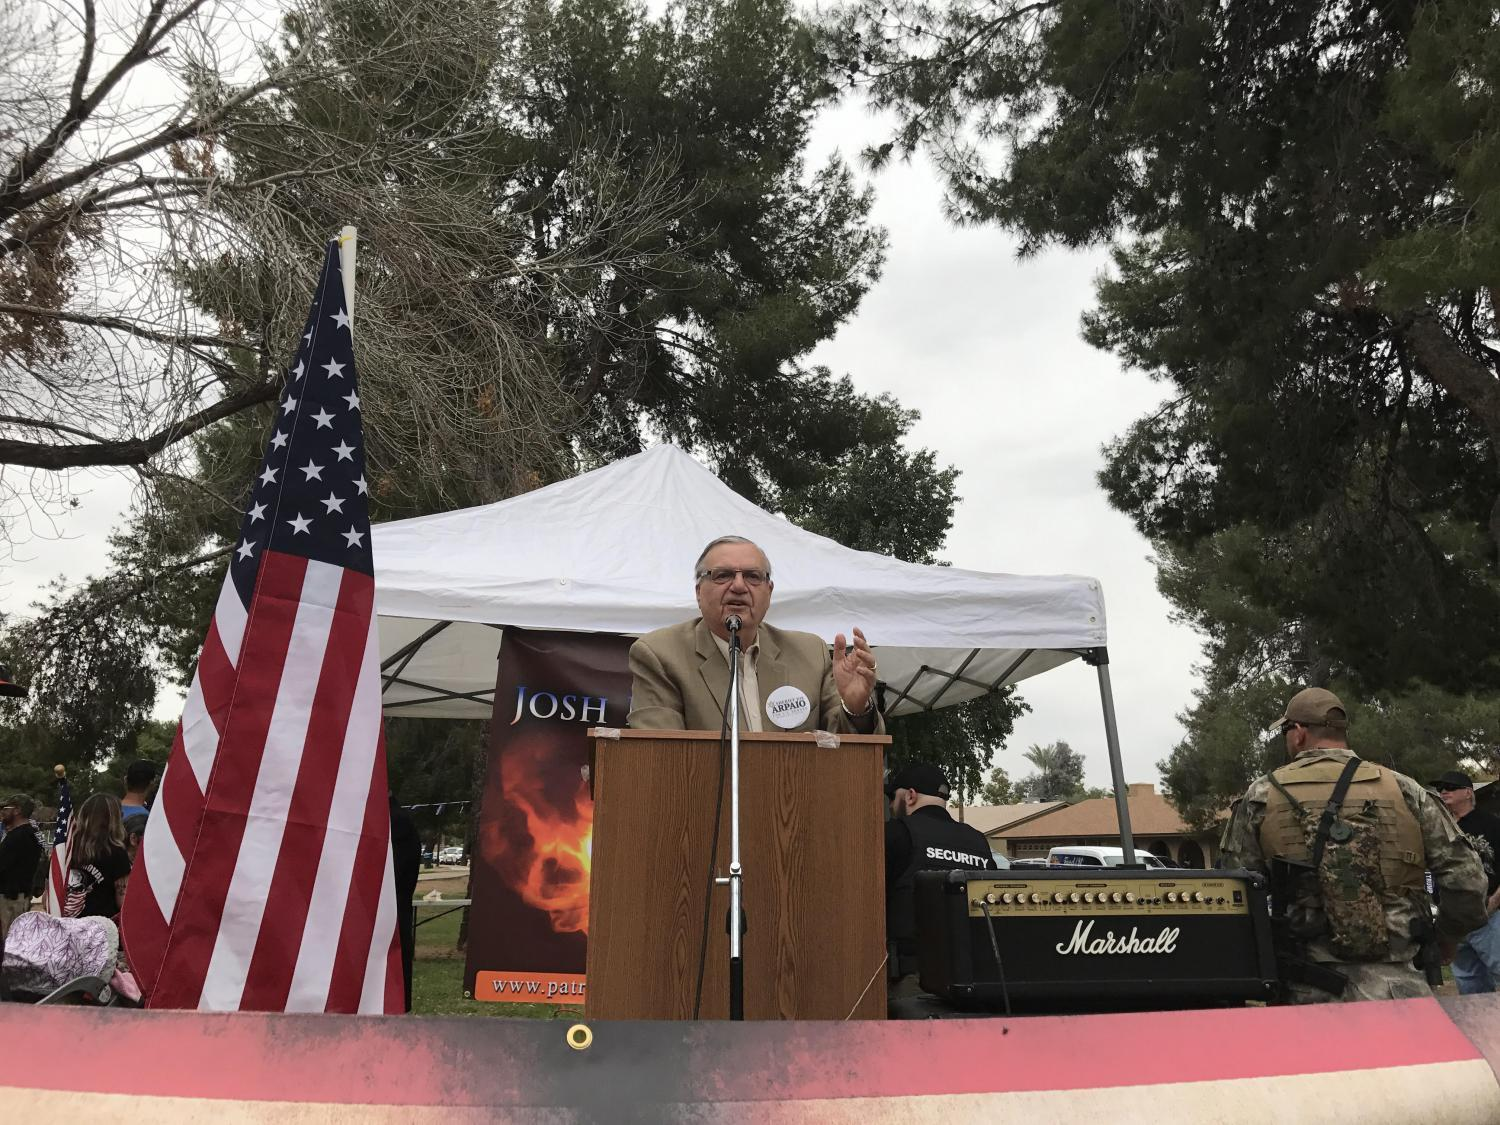 Republican U.S. Senate candidates Kelli Ward and Joe Arpaio spoke at a Make America Great Again rally in north Phoenix Saturday, March 10. Arizona conservatives gathered at Cactus Park to show their support for President Donald Trump.